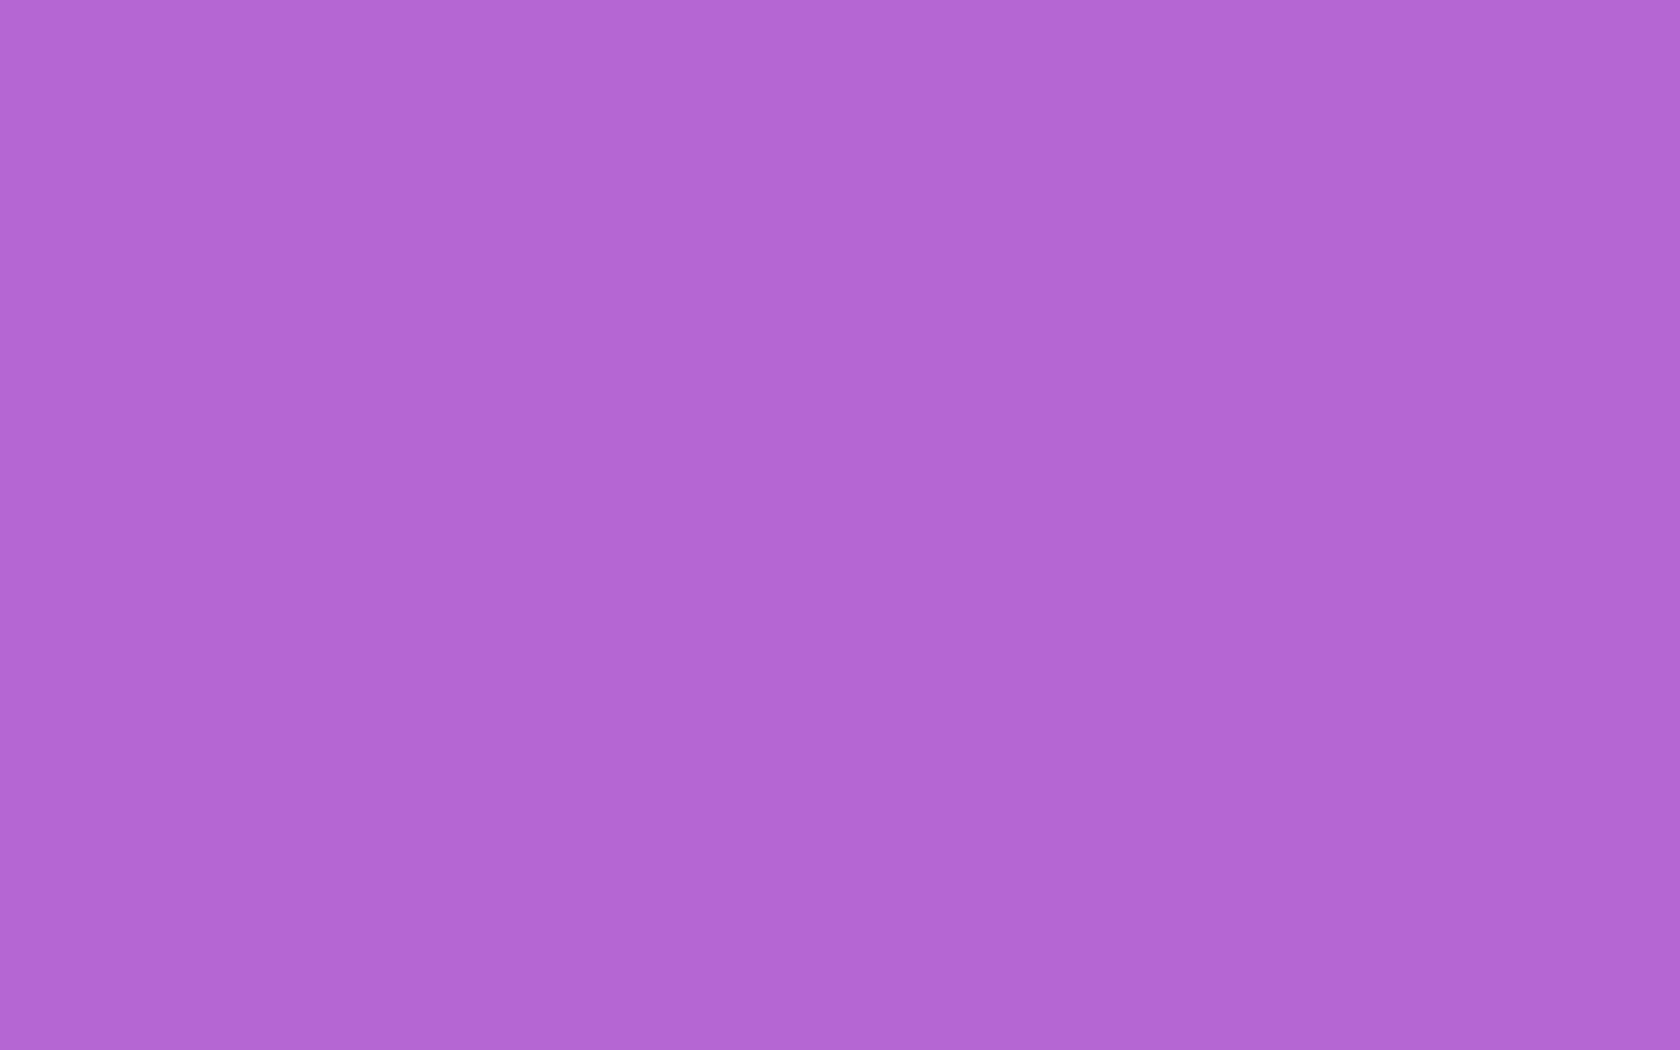 1680x1050 Rich Lilac Solid Color Background